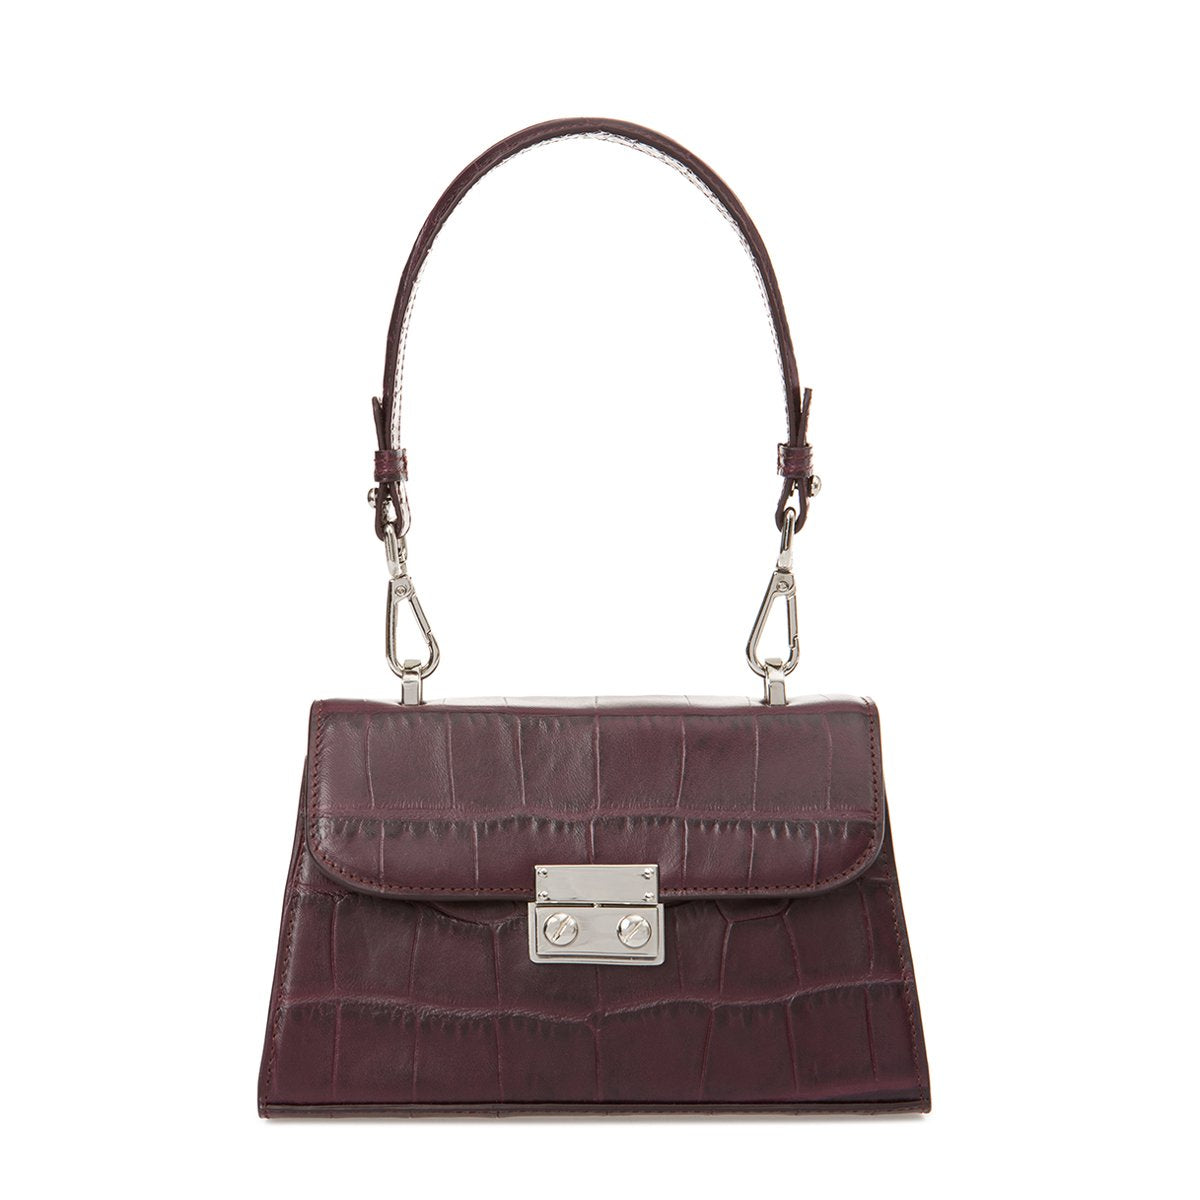 CHARLOT PETIT BAG BURGUNDY CROCO